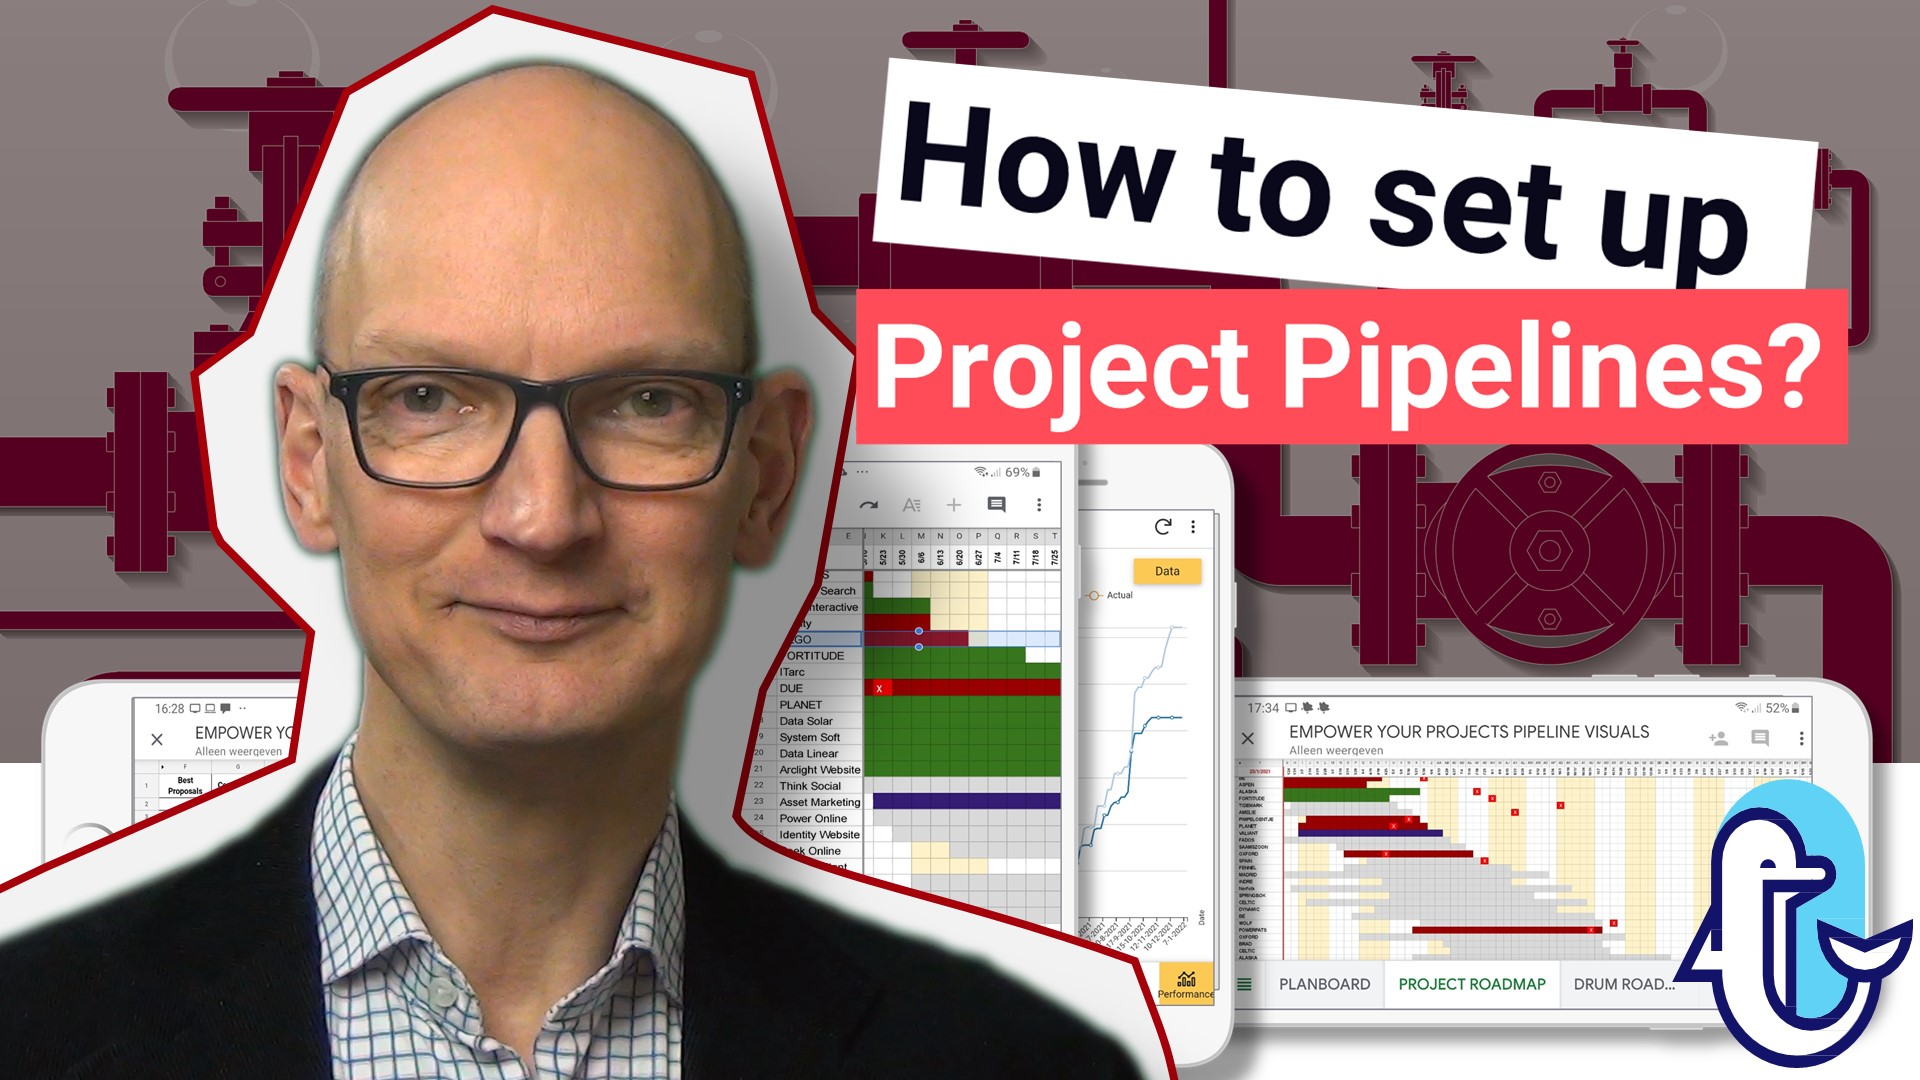 Project Pipeline App. How to set up pipelines?